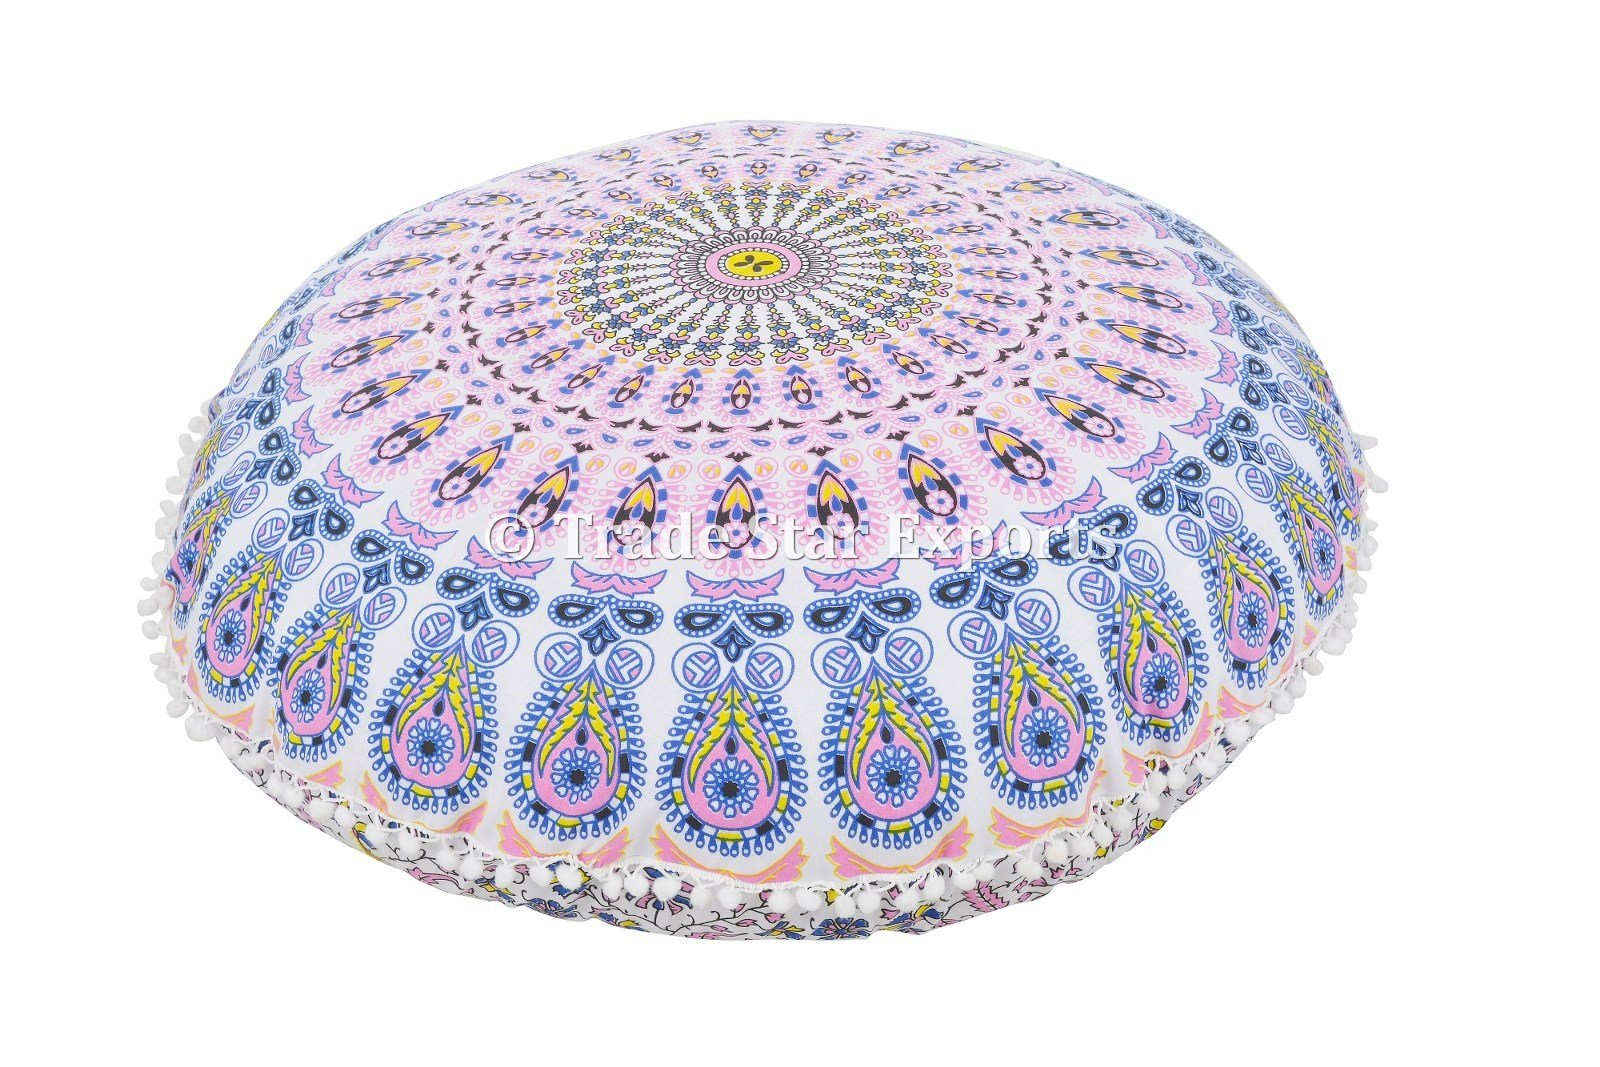 Round Mandala Floor Pillow, Indian Outdoor Cushions, Decorative Throw Pillowcases 32'', Roundie Boho Cushion Cover, Pom Pom Pillow Shams With Insert